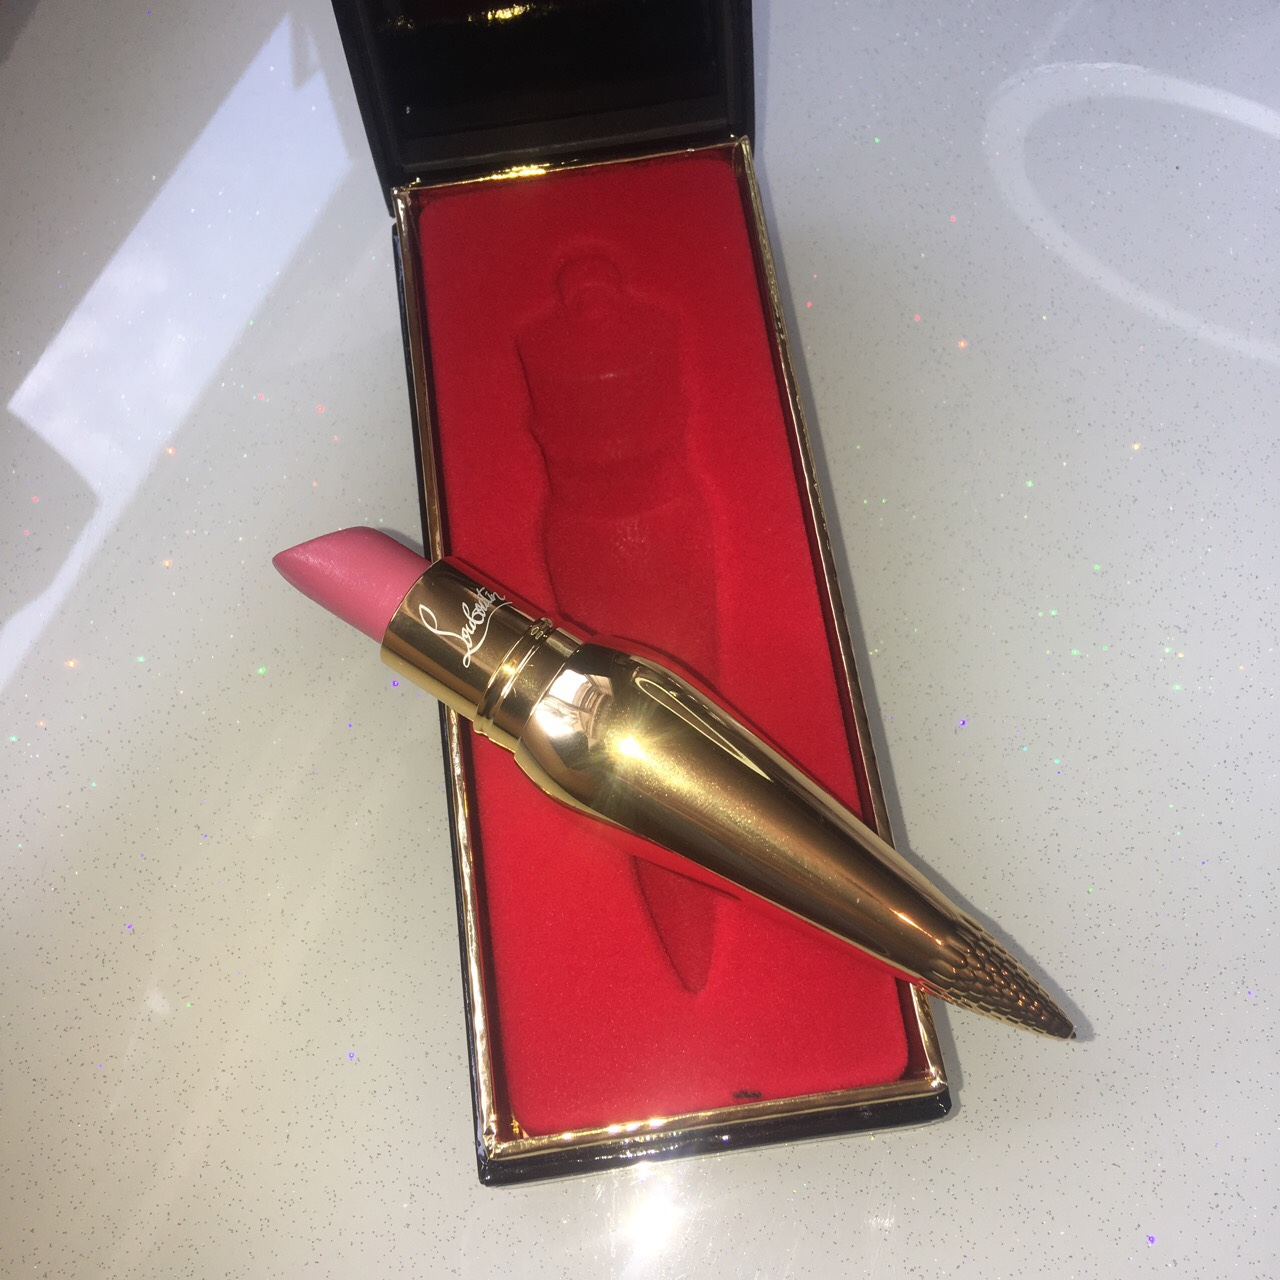 Christian Louboutin Lipstick Used Once On A Night Depop